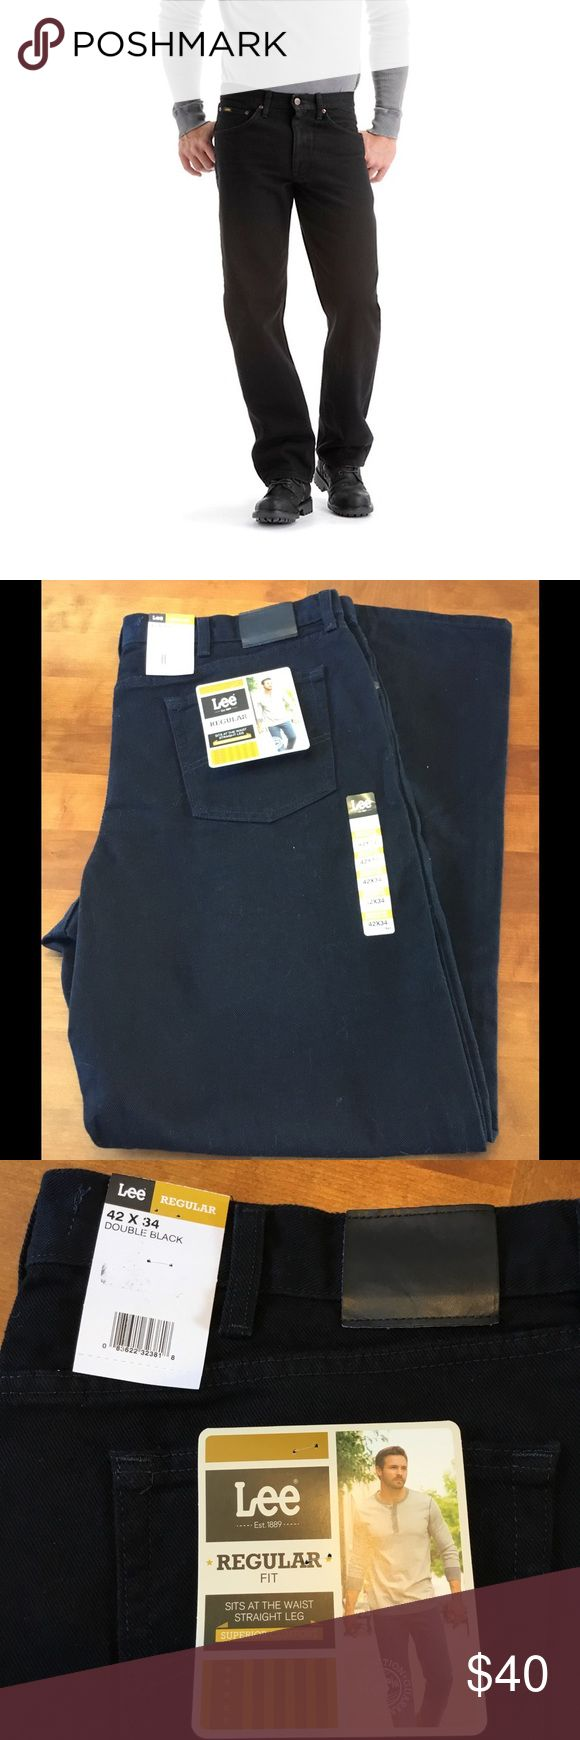 MENS black lee jeans 42 x 34 regular fit tall Regular fit straight leg jeans black. SIZE 42x34. Best selling Lee jeans. Superior comfort. Sits at the waist and is straight through the seat thigh and leg. Durable heavy weight denim. BRAND NEW WITH TAGS Lee Jeans Straight